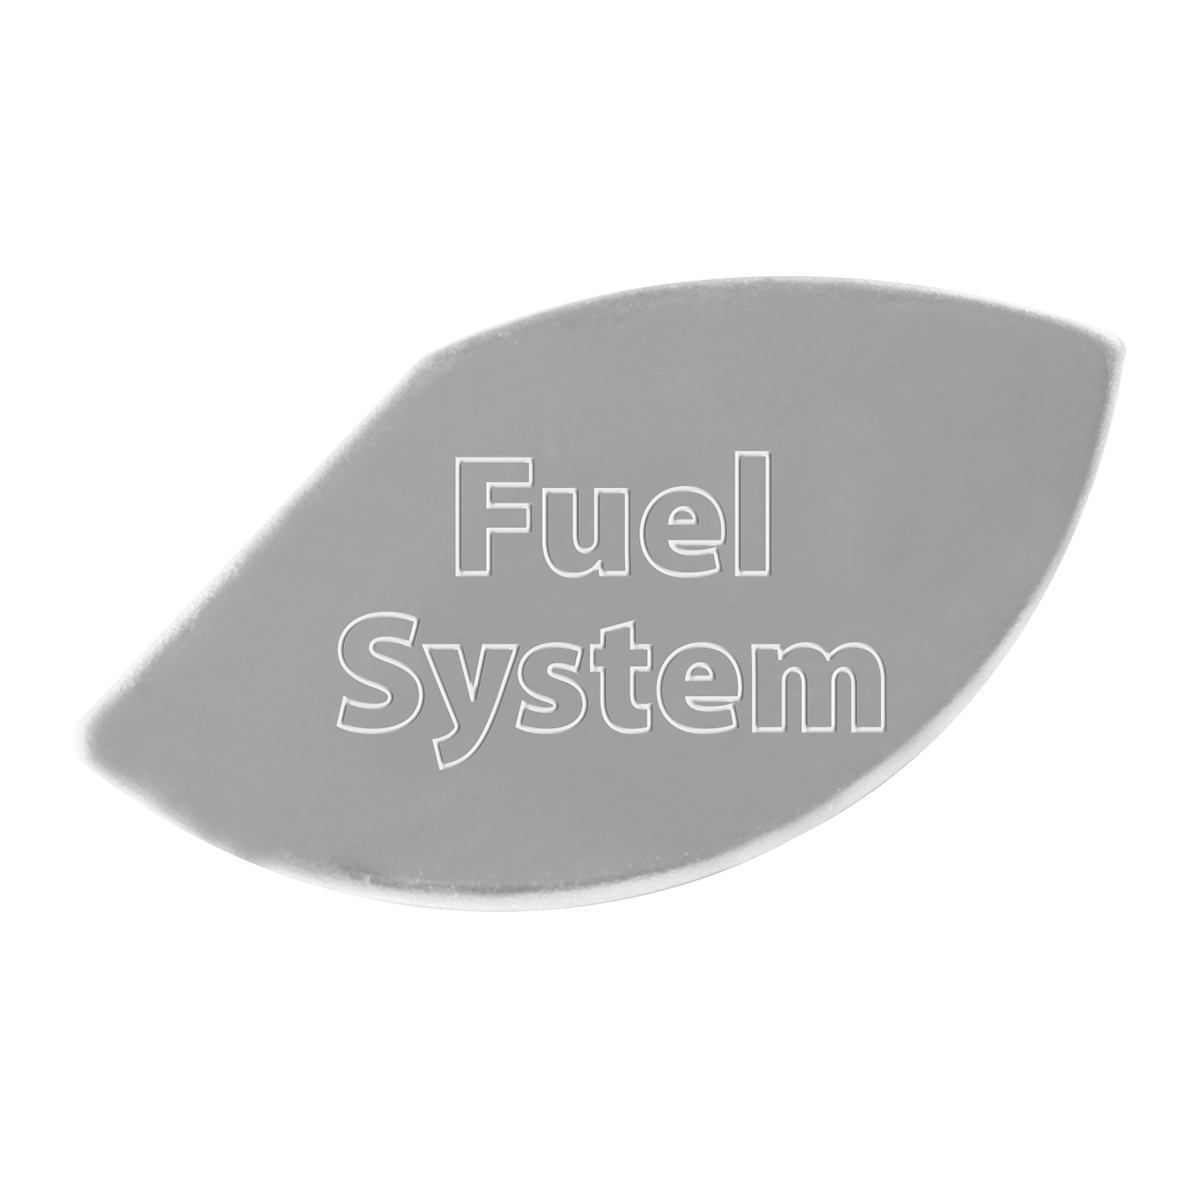 68657 Stainless Steel Fuel System Gauge Emblem for KW